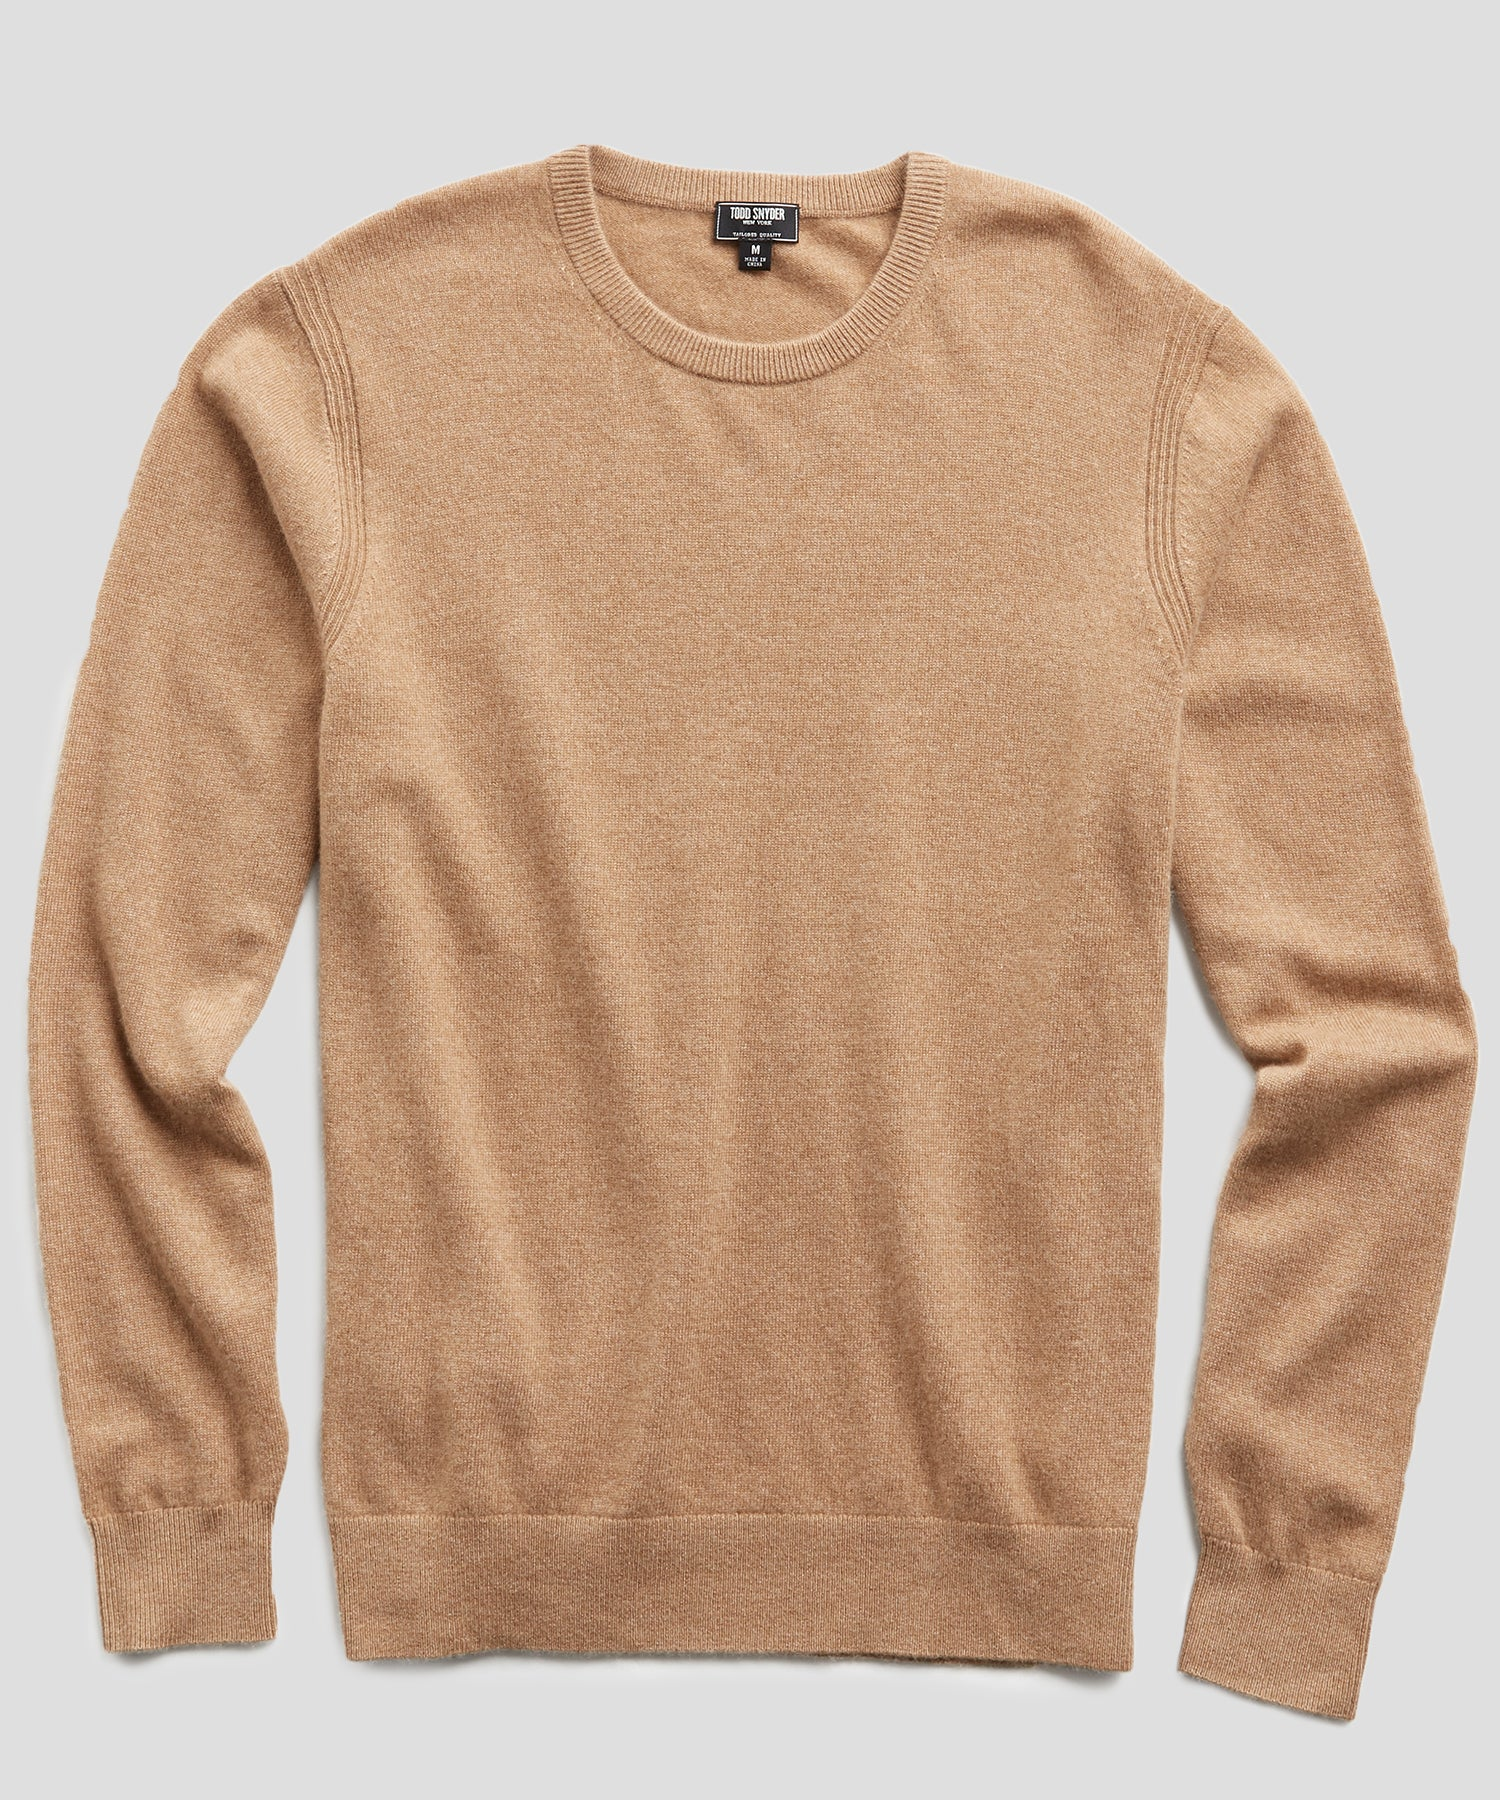 Todd Snyder men's sweaters